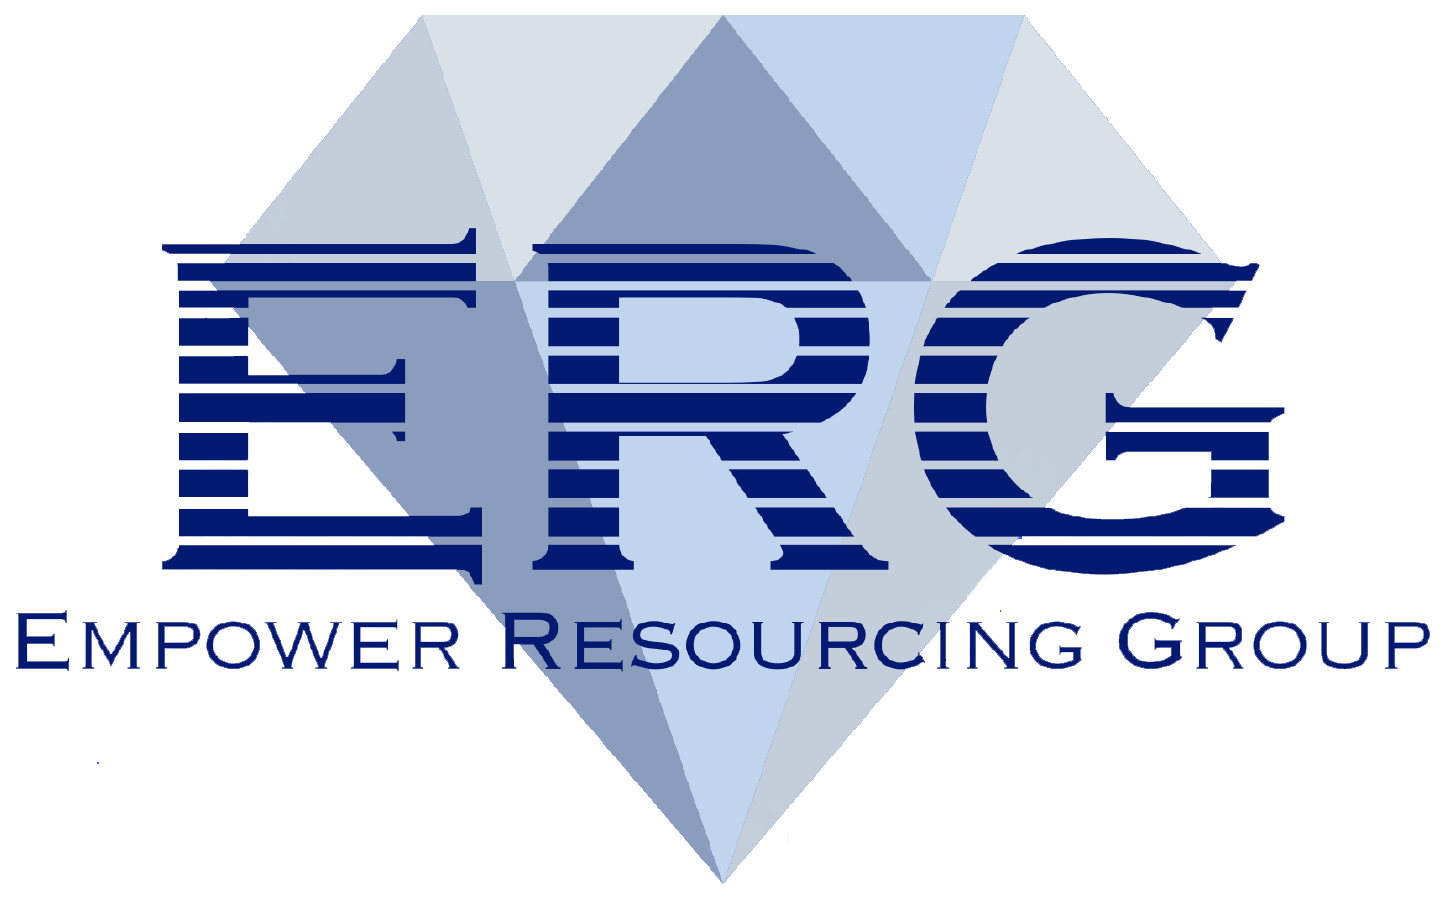 Empower Resourcing Group